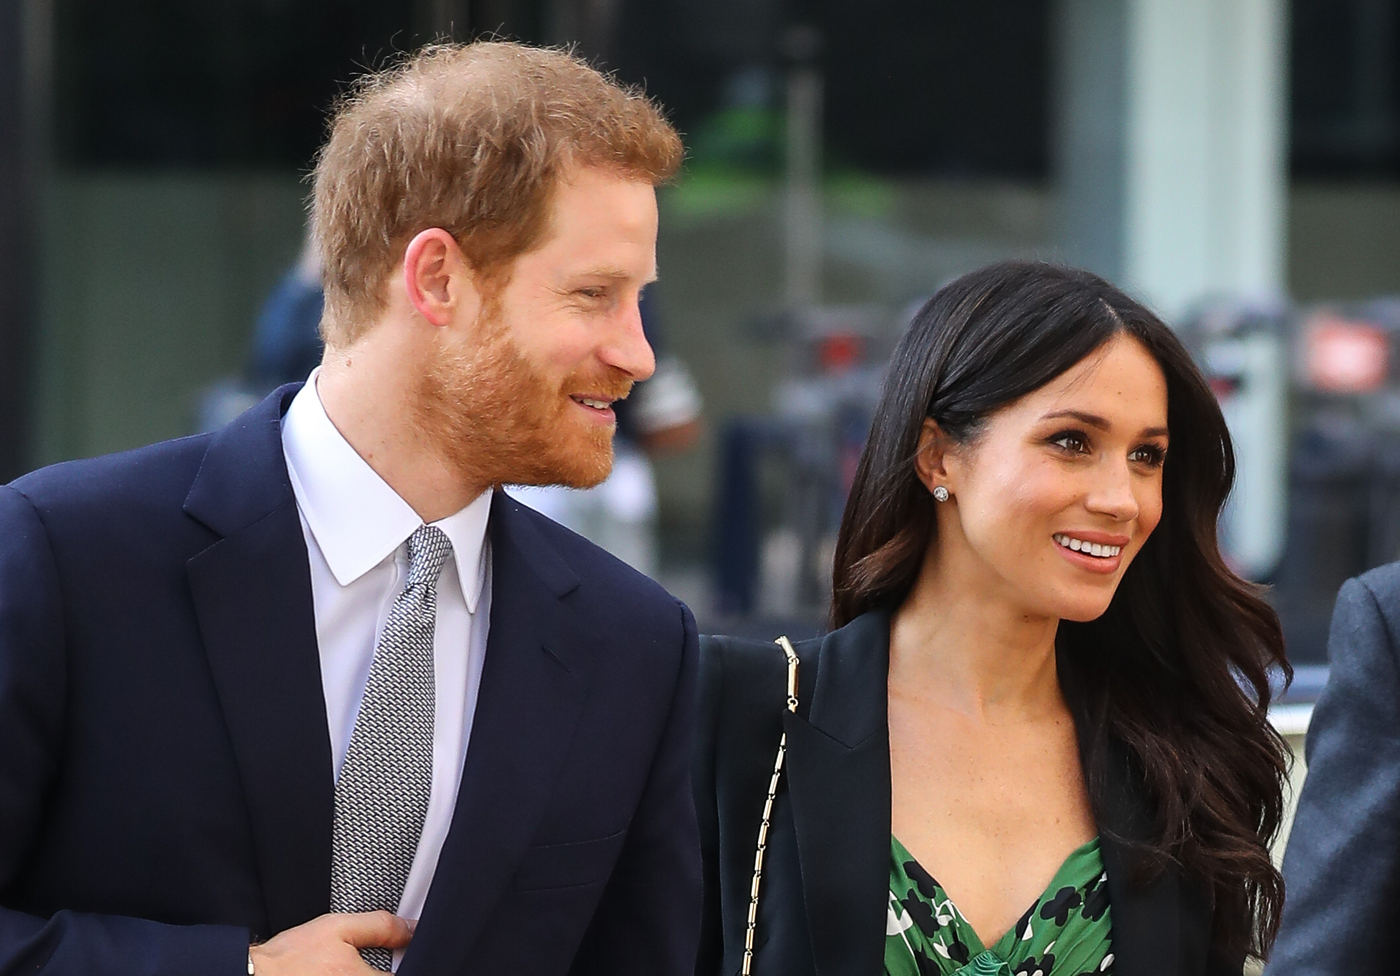 Prince Harry and Meghan Markle's wedding carriage details